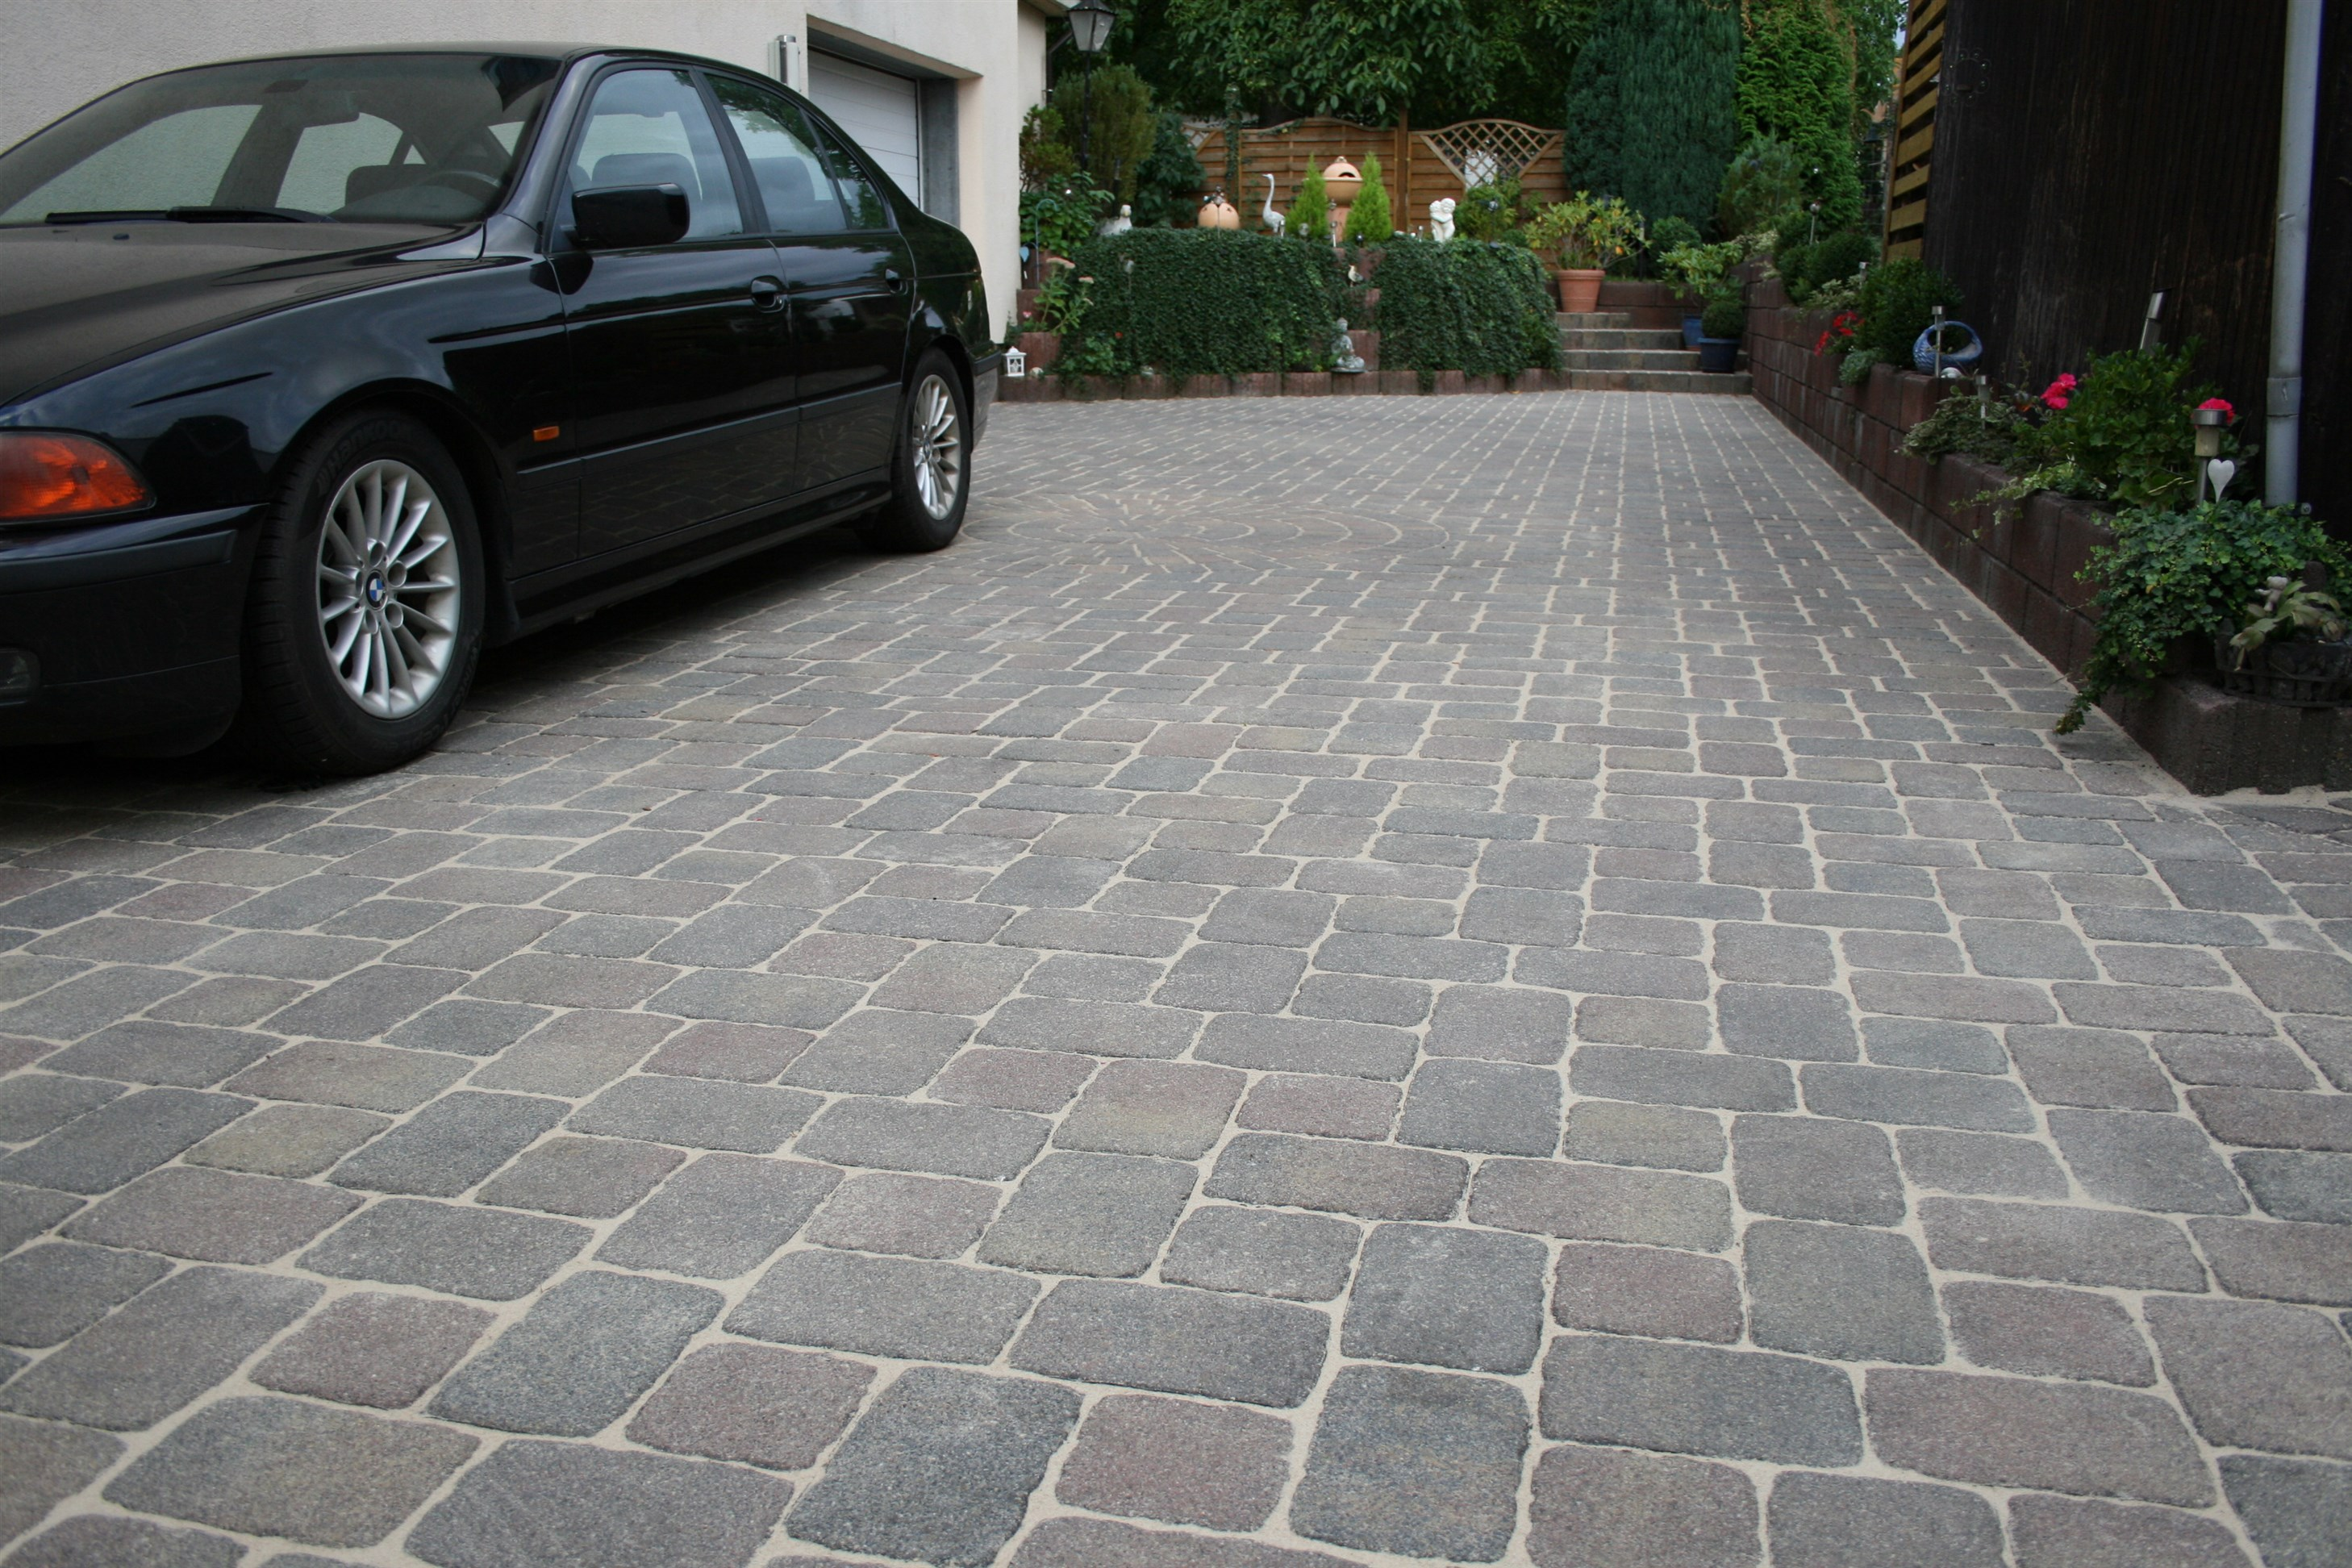 Innovative Romex jointing mortar for narrow paving stones and narrow joints